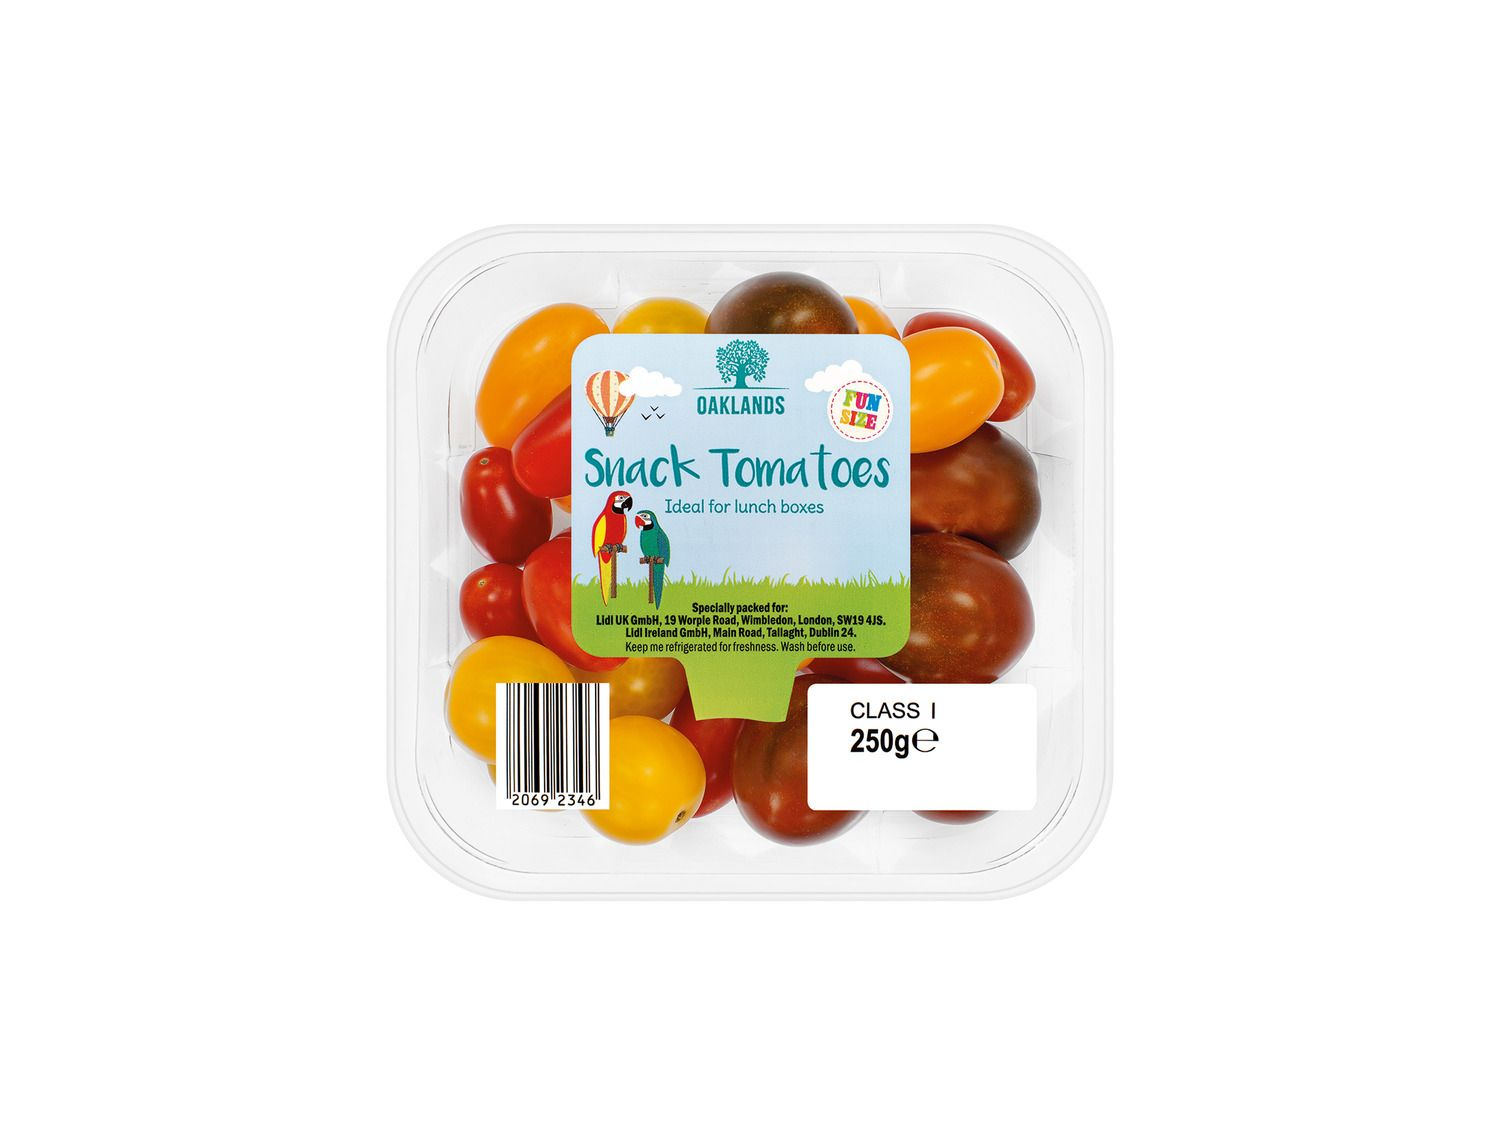 Oaklands Fun Size Snack Tomatoes At Lidl Uk